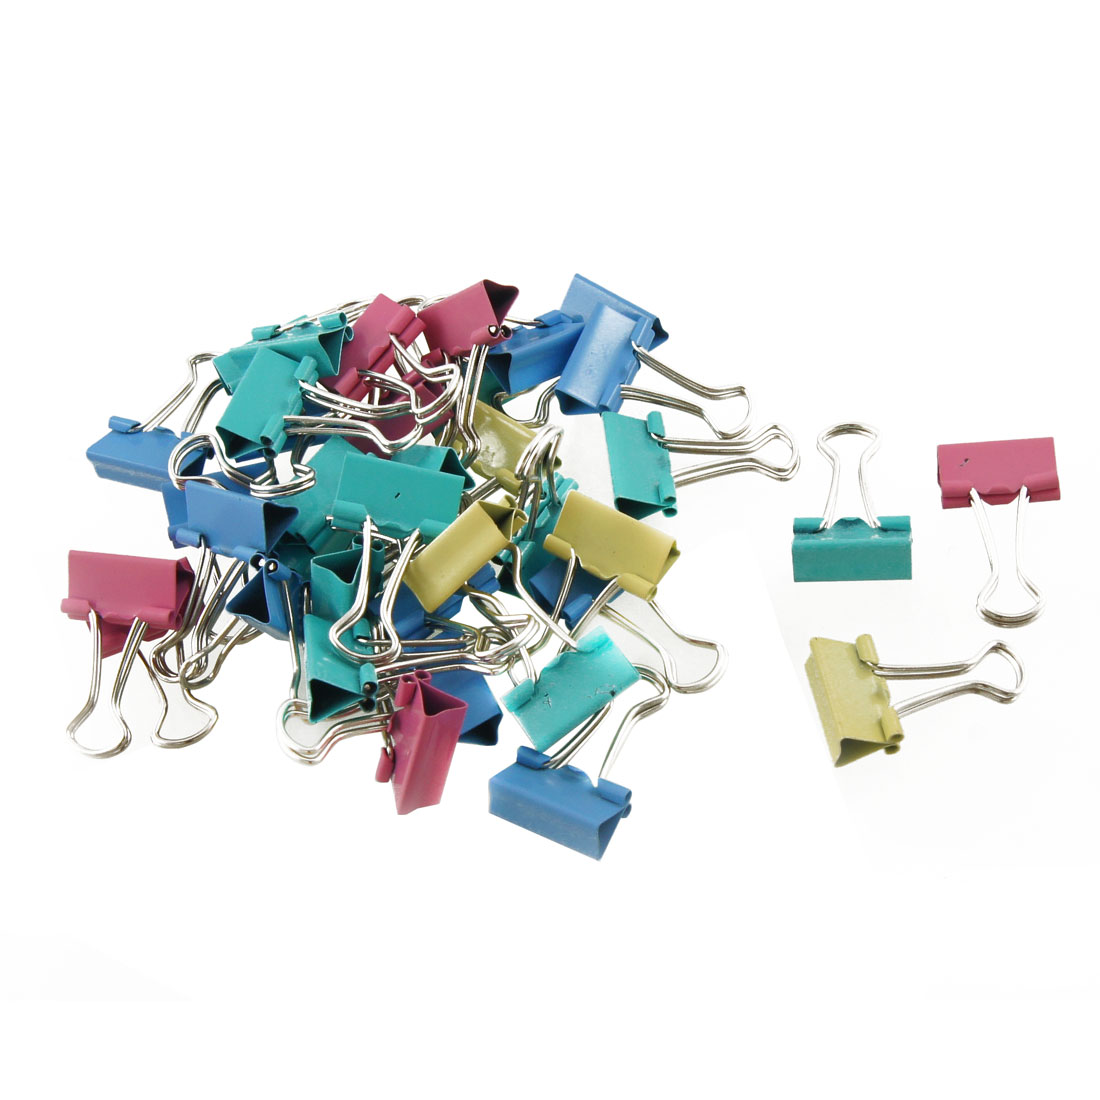 Office School Assorted Color Metal Binder Clips 40 Pcs